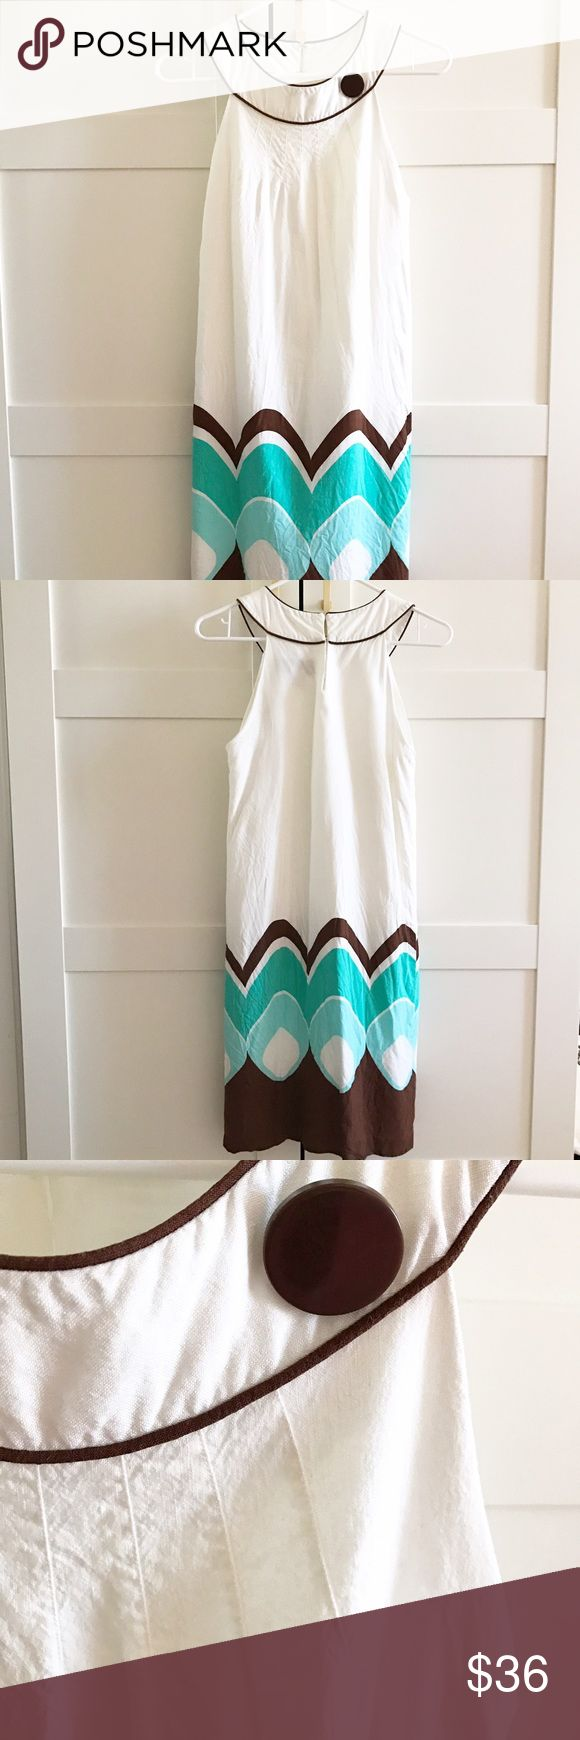 Turquoise and brown print beach dress NWOT Shift dress in linen material with turquoise and brown design and a brown button on the front. Never worn! Tag says size 12, but this has been altered significantly to fit like a size 2. Jessica Howard Dresses Strapless